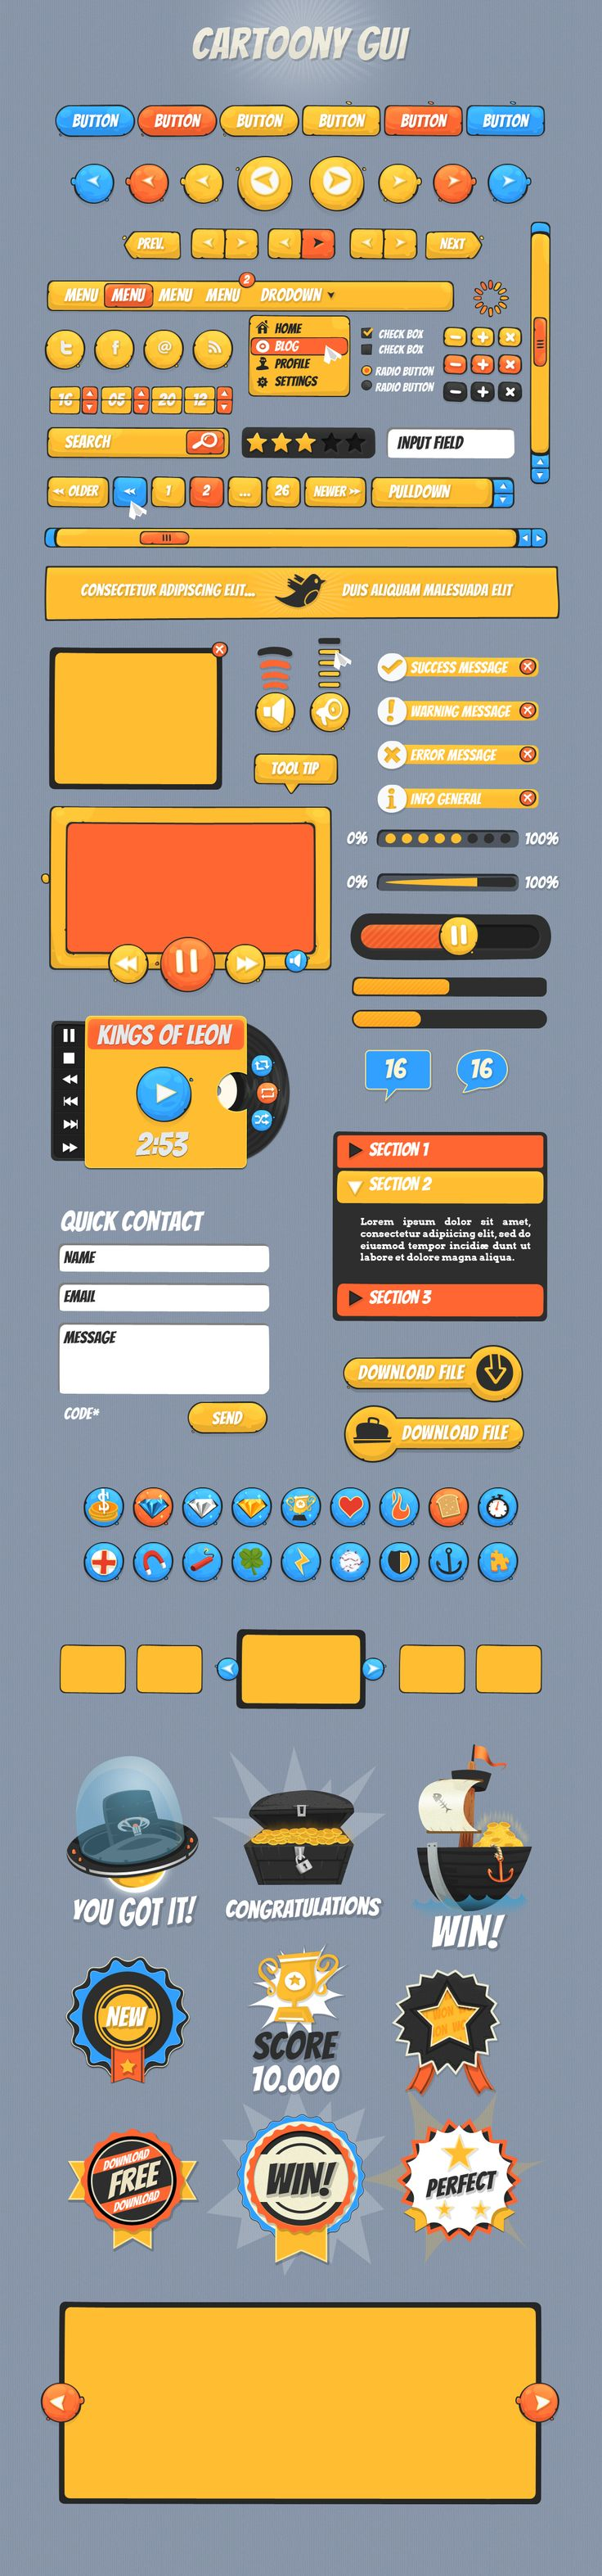 Cartoony_Gui_Full.jpg (1100×4704)